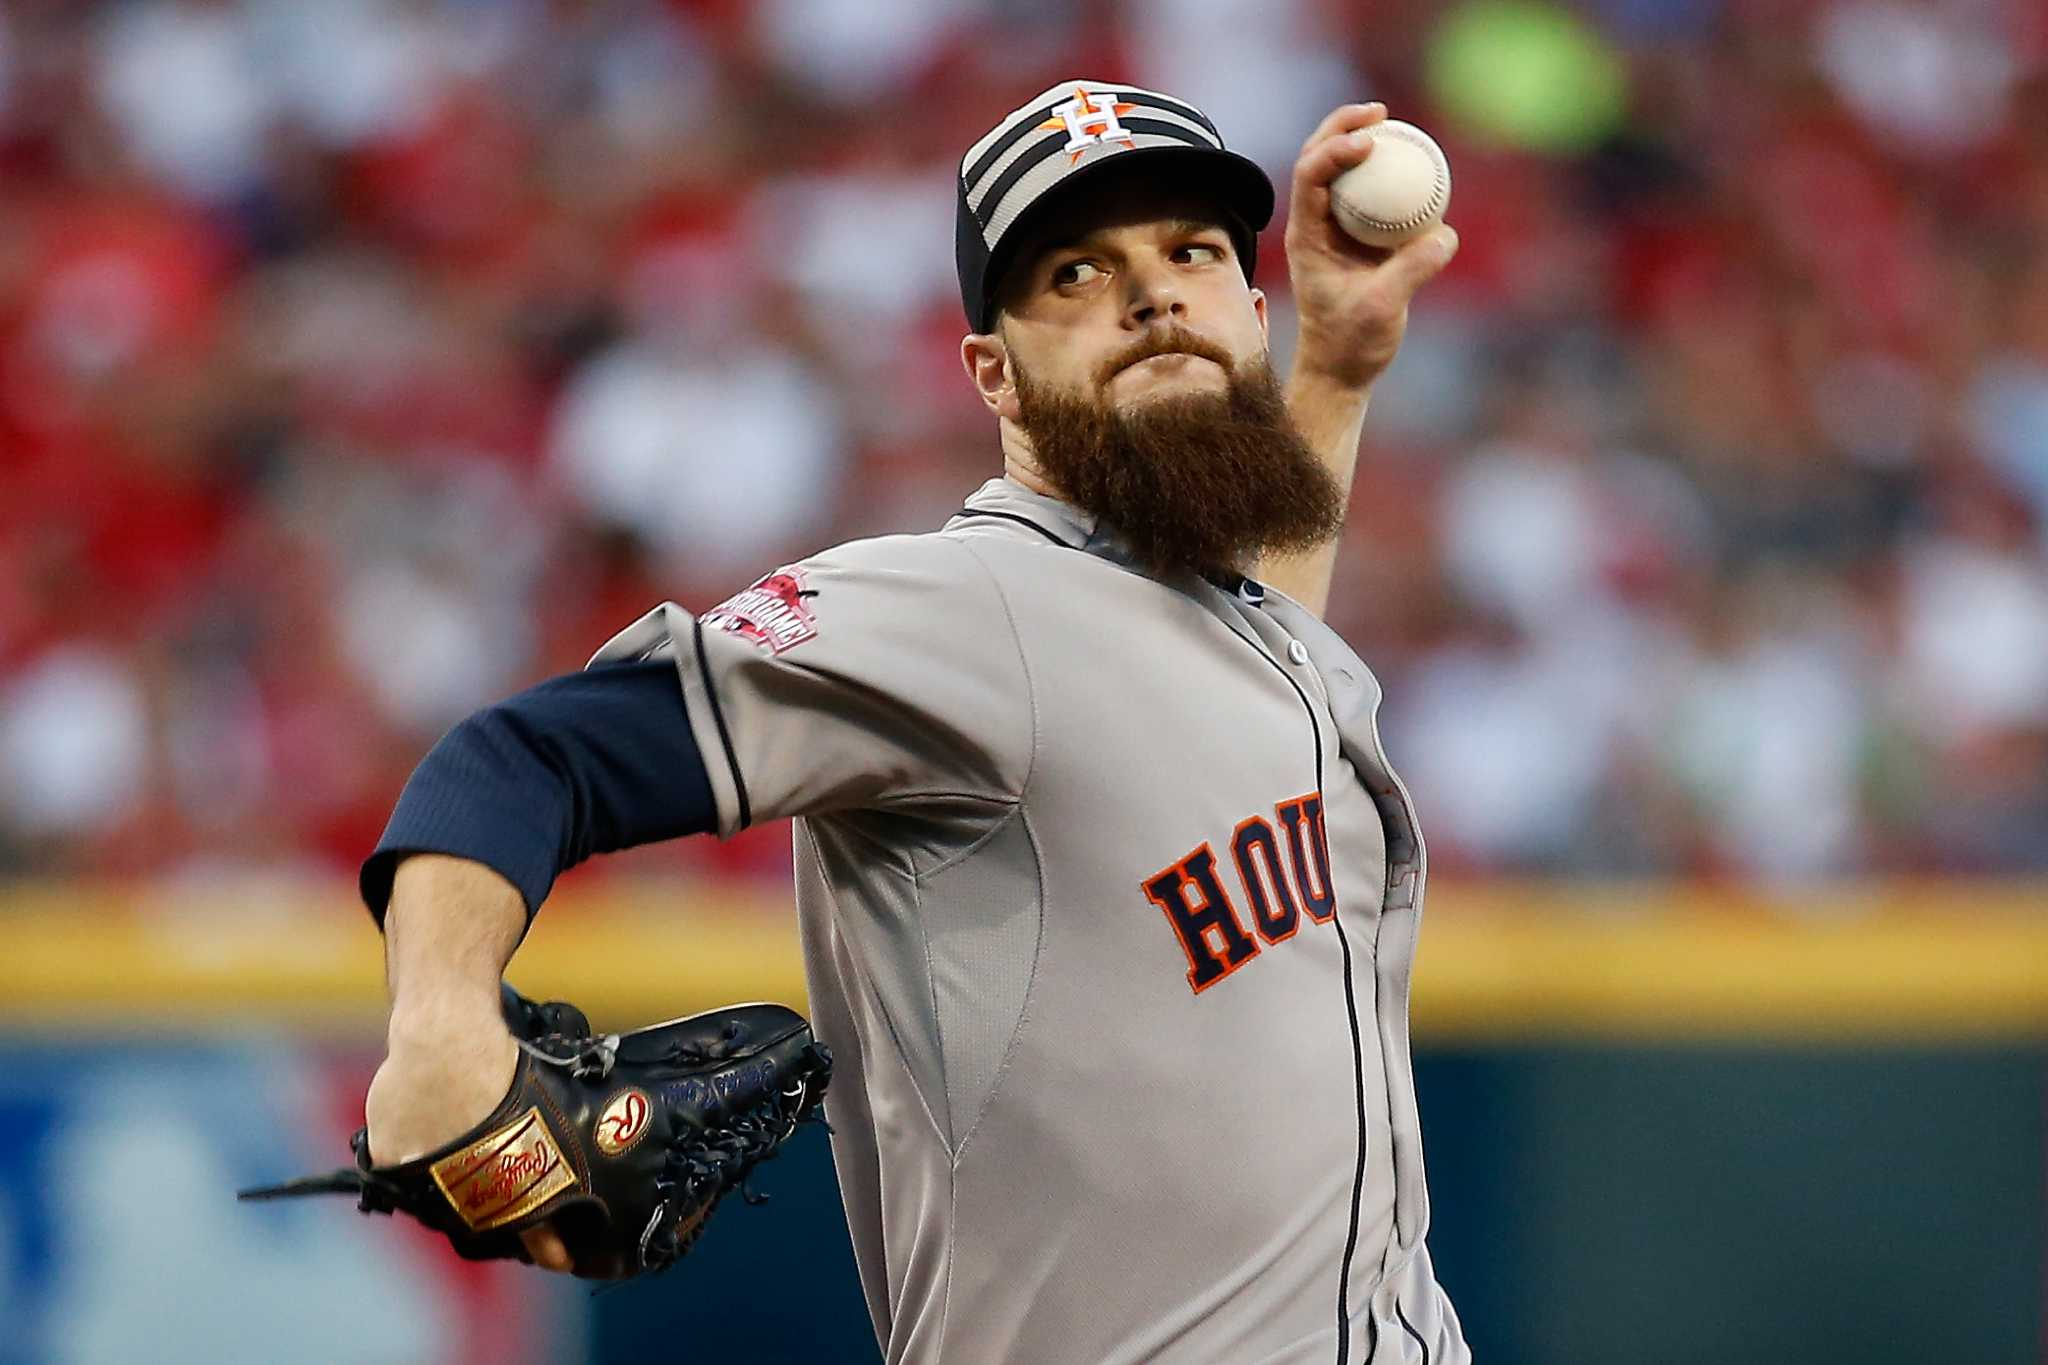 Now a world champ, Astros' Dallas Keuchel will shave beard, but when?